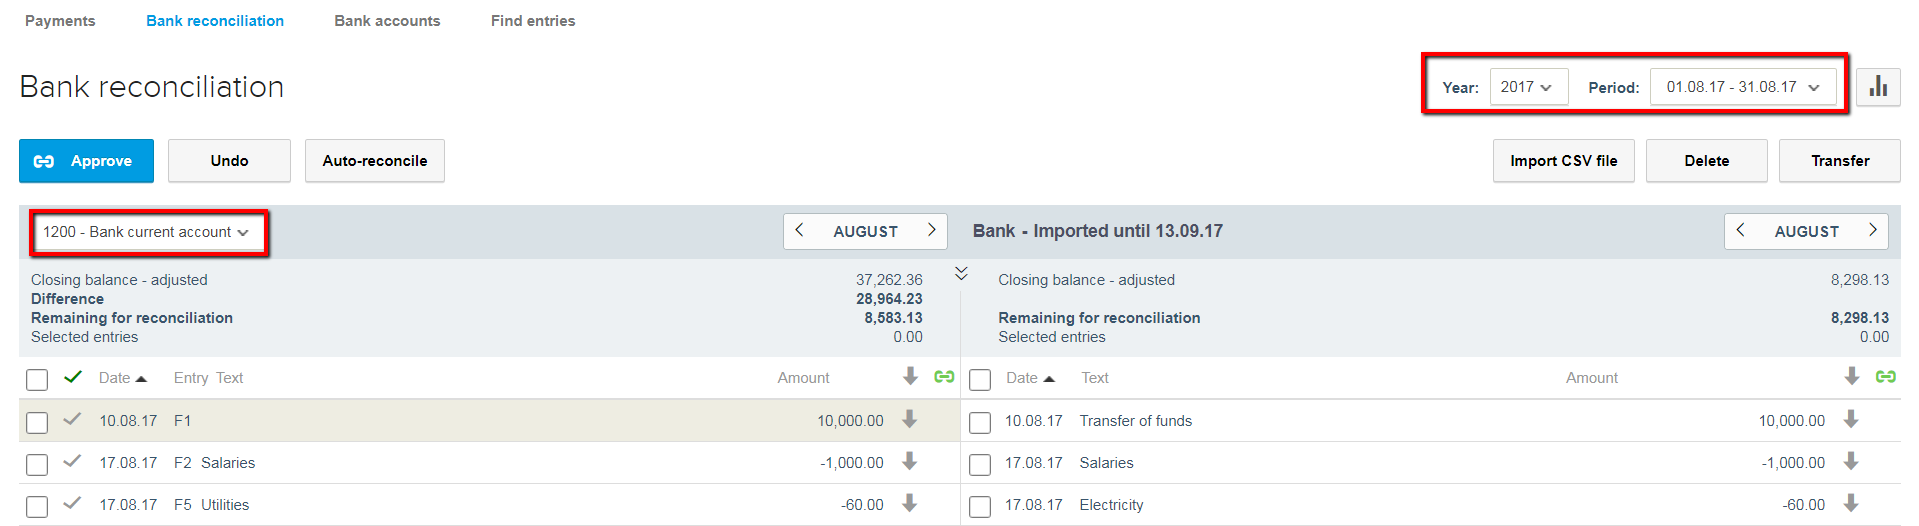 bank reconciliation - choose date and bank account in reviso